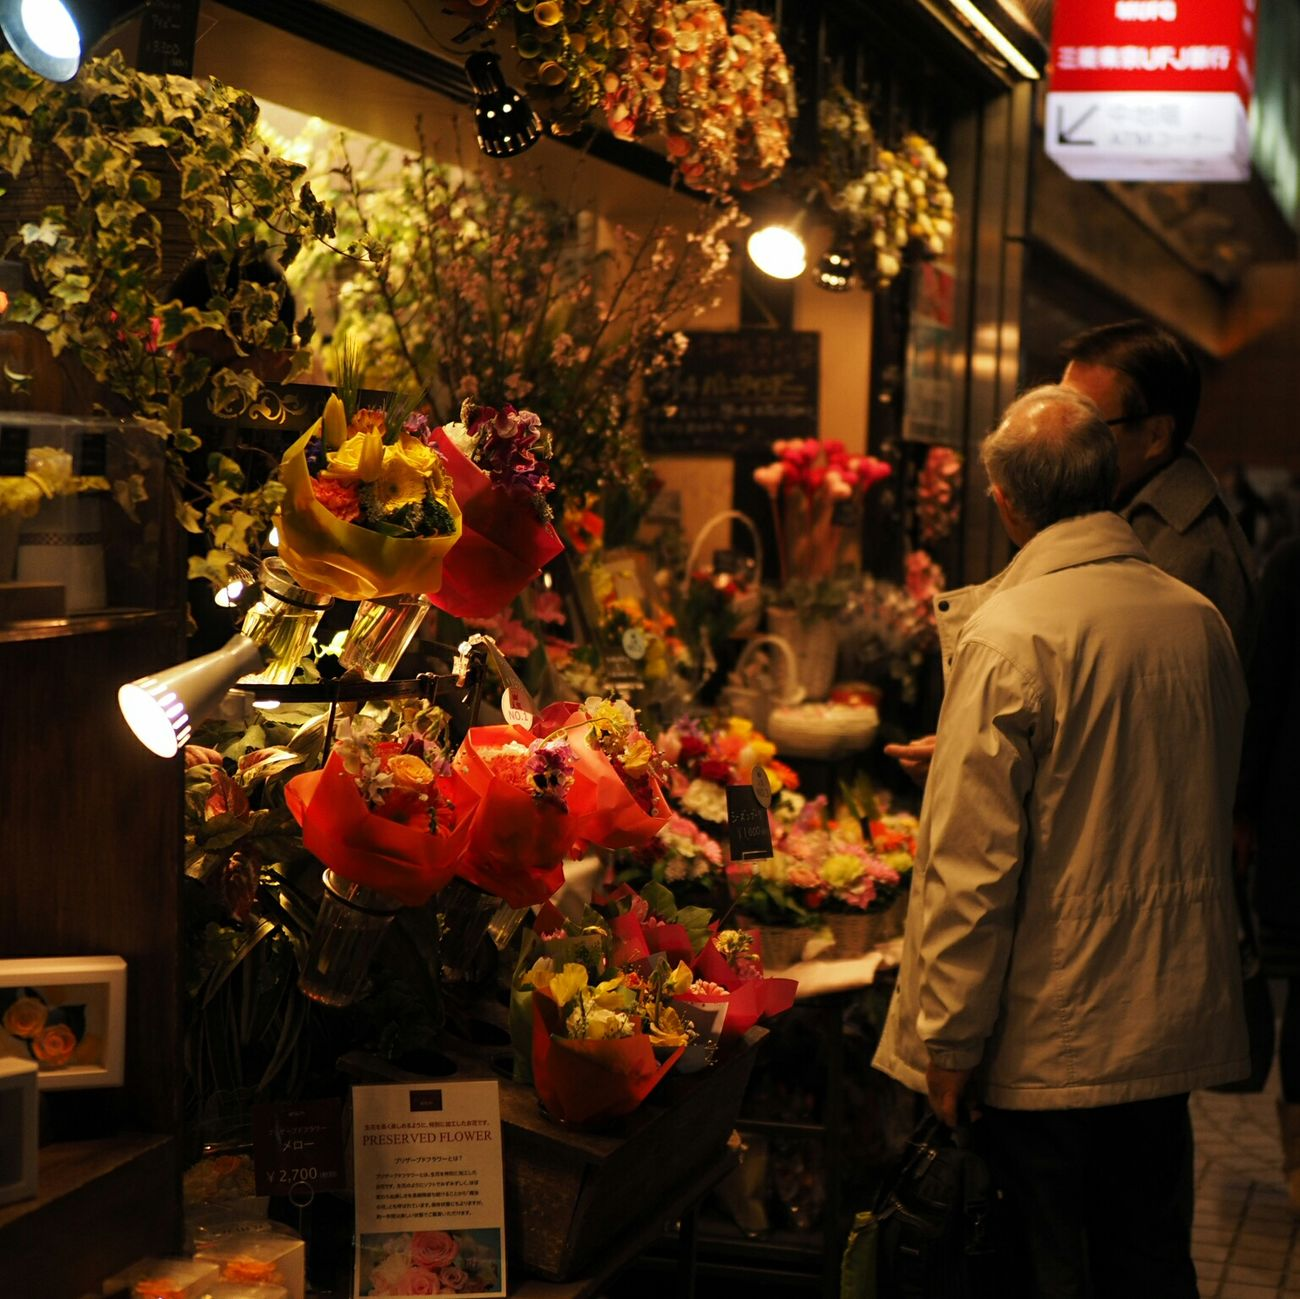 Men Capturing The Moment Night 50mm Snapshot Of Life Bokeh Photography Bokeh Bokehlicious Nightphotography Japan Photography Taking Photos Taking Pictures Flower Shop